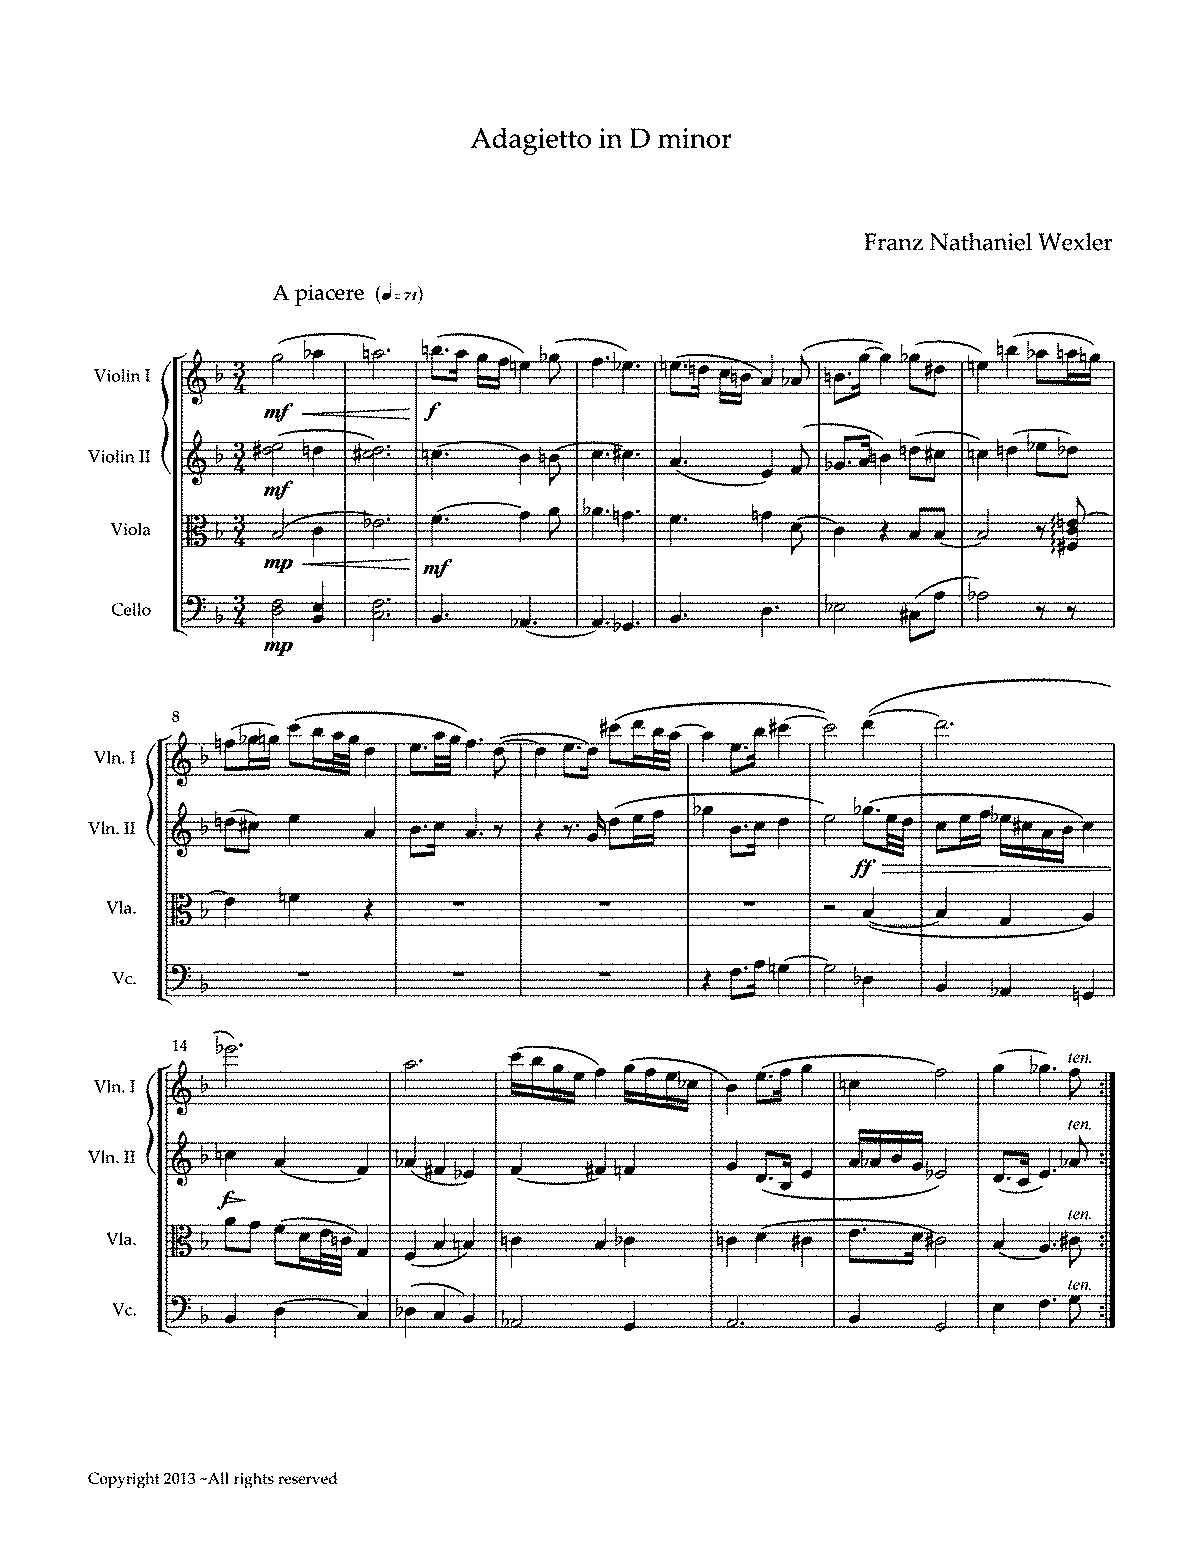 PMLP429518-Adagietto in D minor by Franz Nathaniel Wexler.pdf